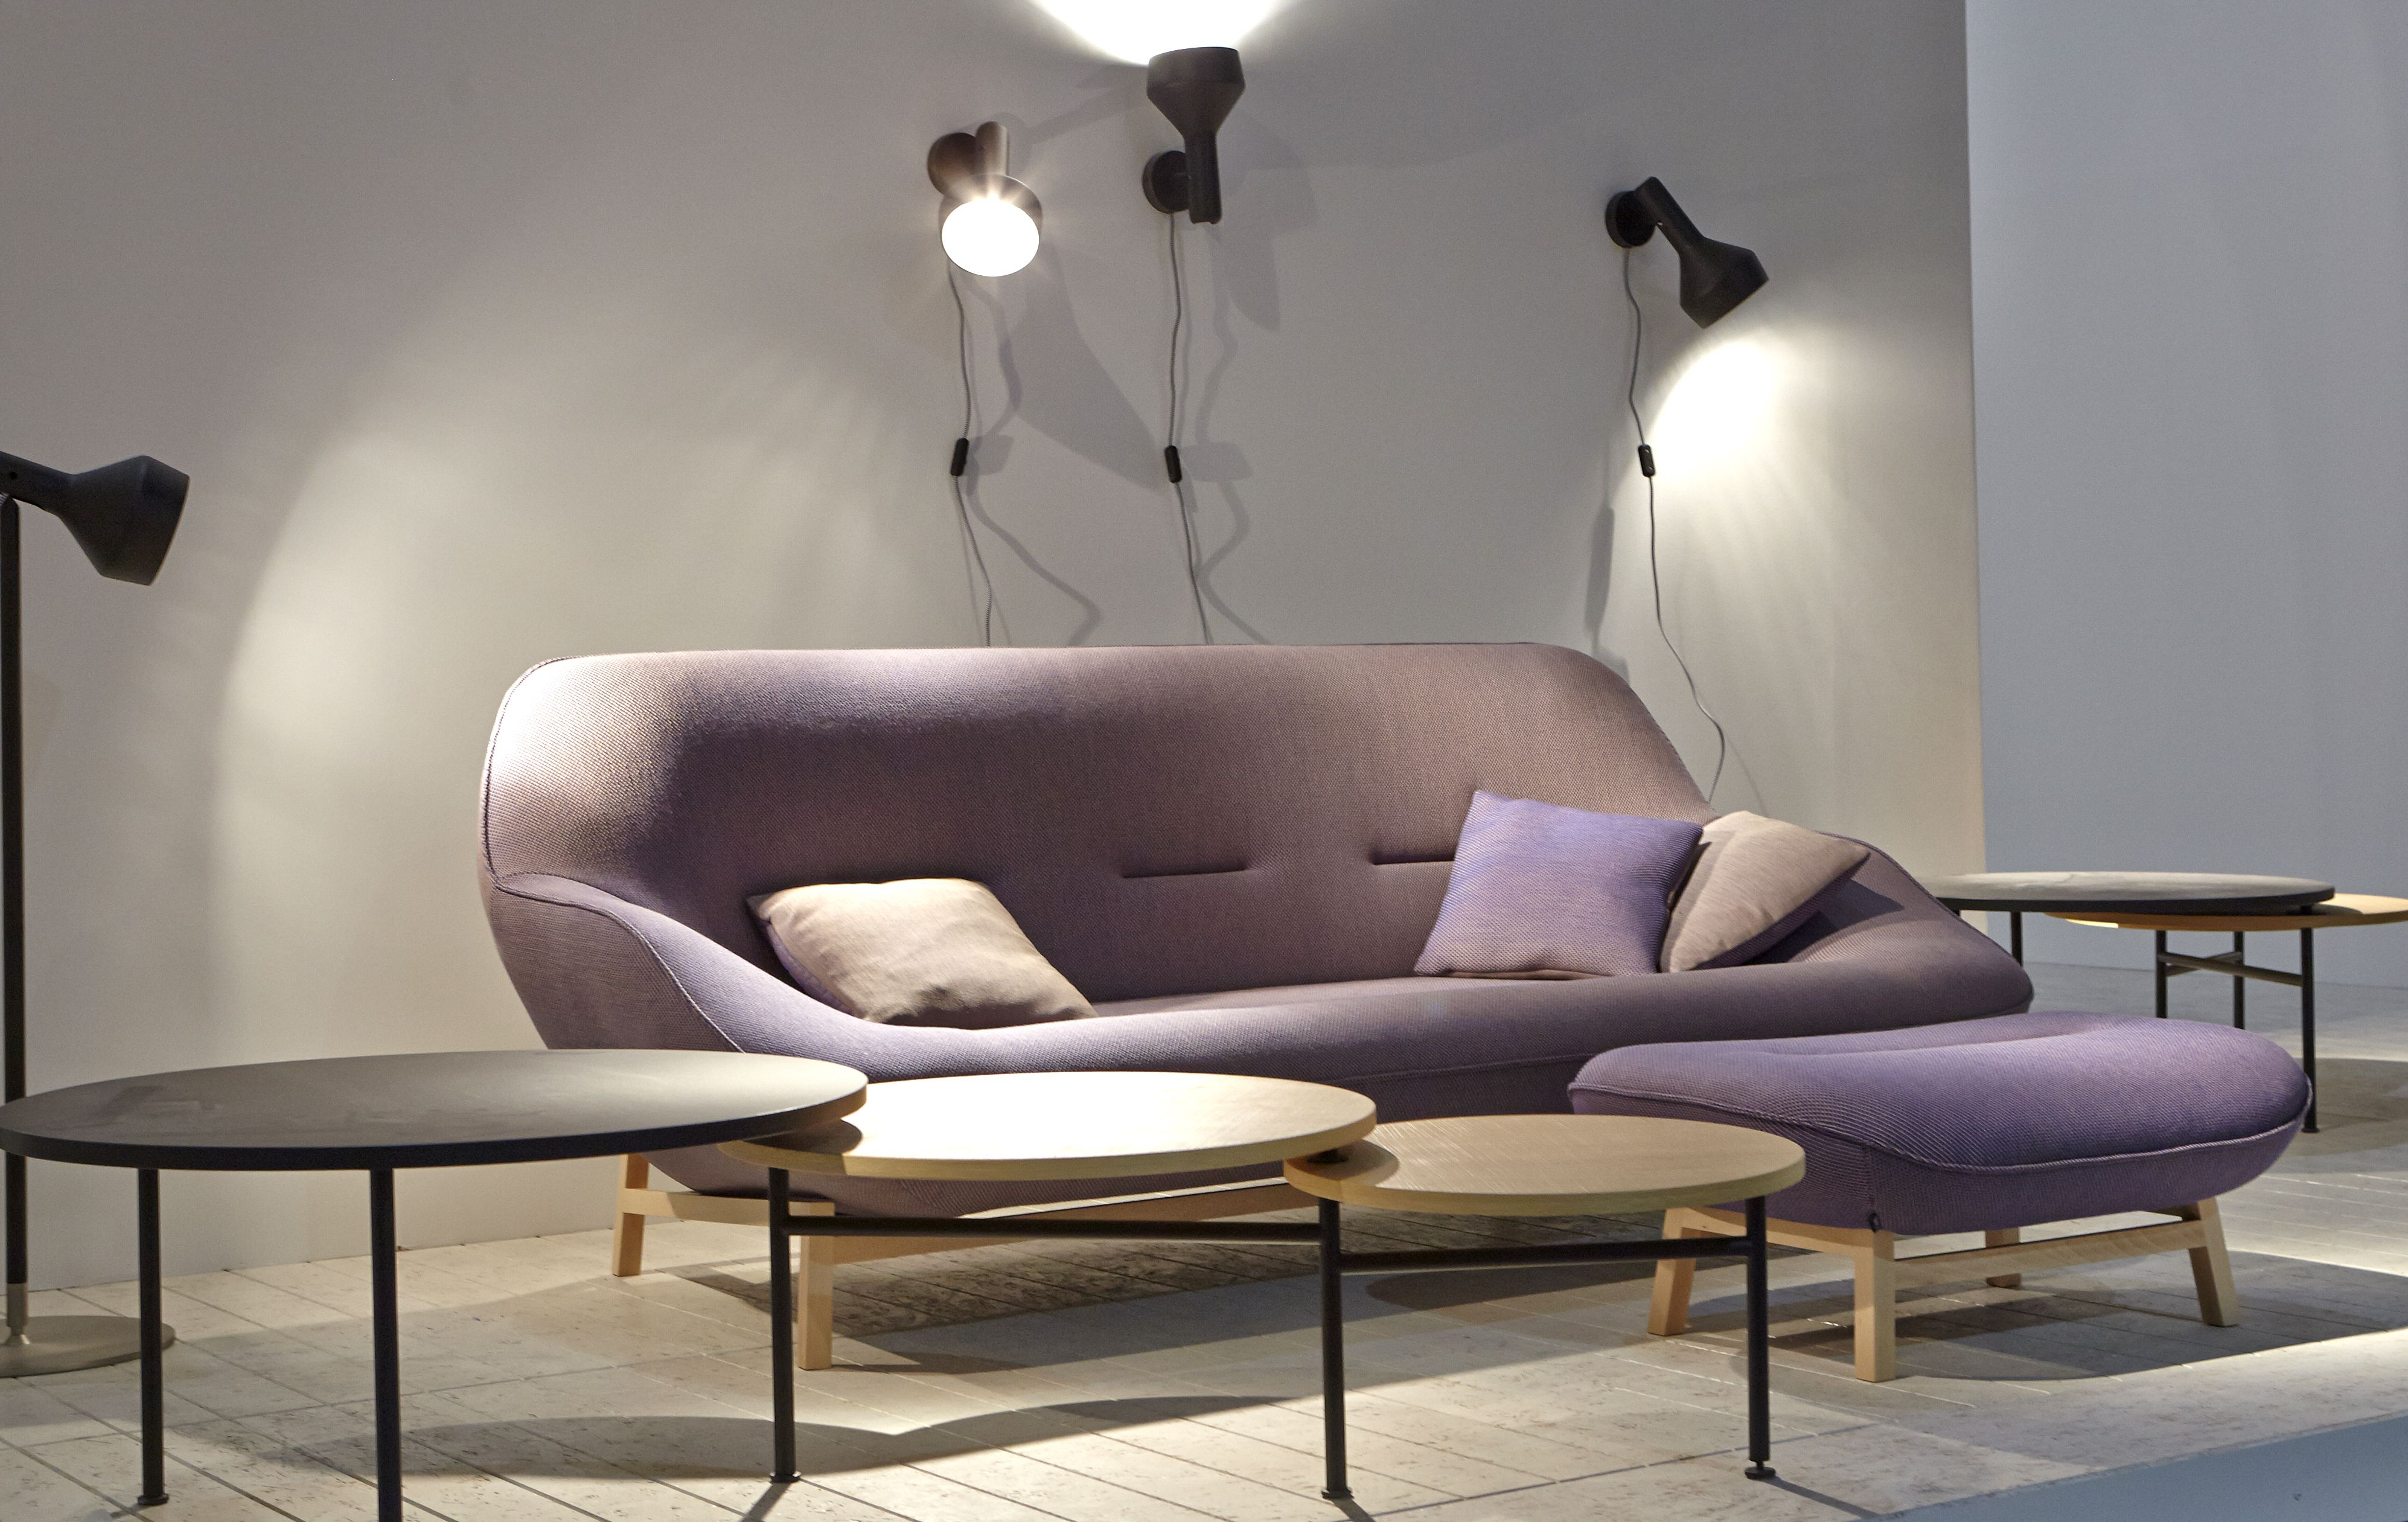 ligne roset introduces the new collection at imm cologne and maison objet paris 2014 http. Black Bedroom Furniture Sets. Home Design Ideas